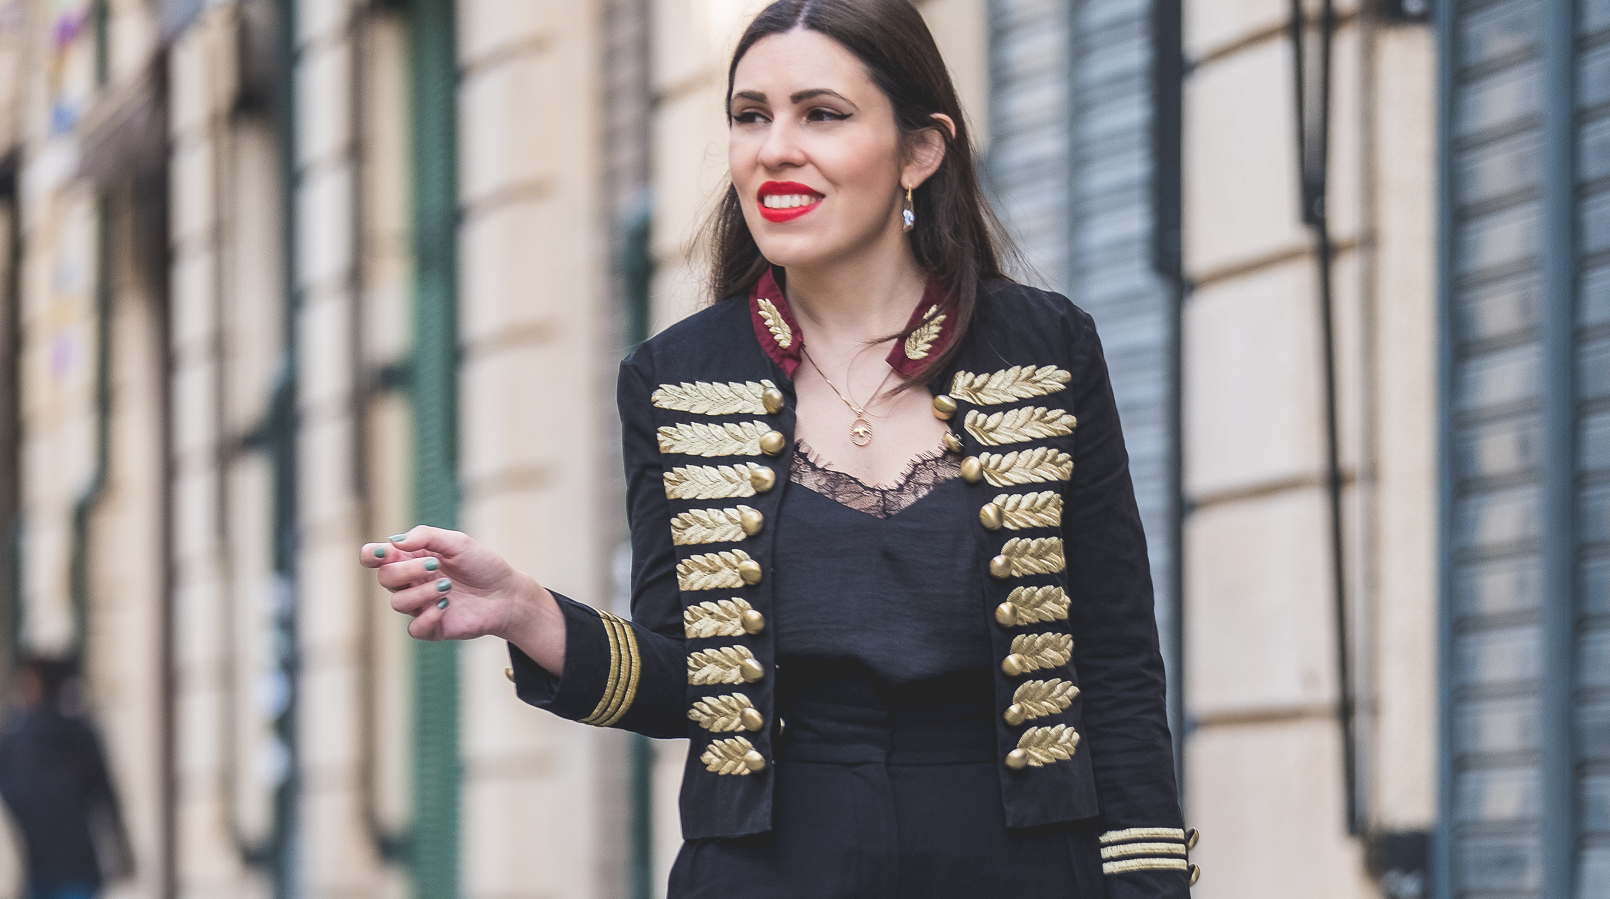 Le Fashionaire The chicest piece you'll have on your wardrobe military gold embroidered black red minusey jacket swallow gold cinco necklace satin black lace stradivarius top 9320F EN